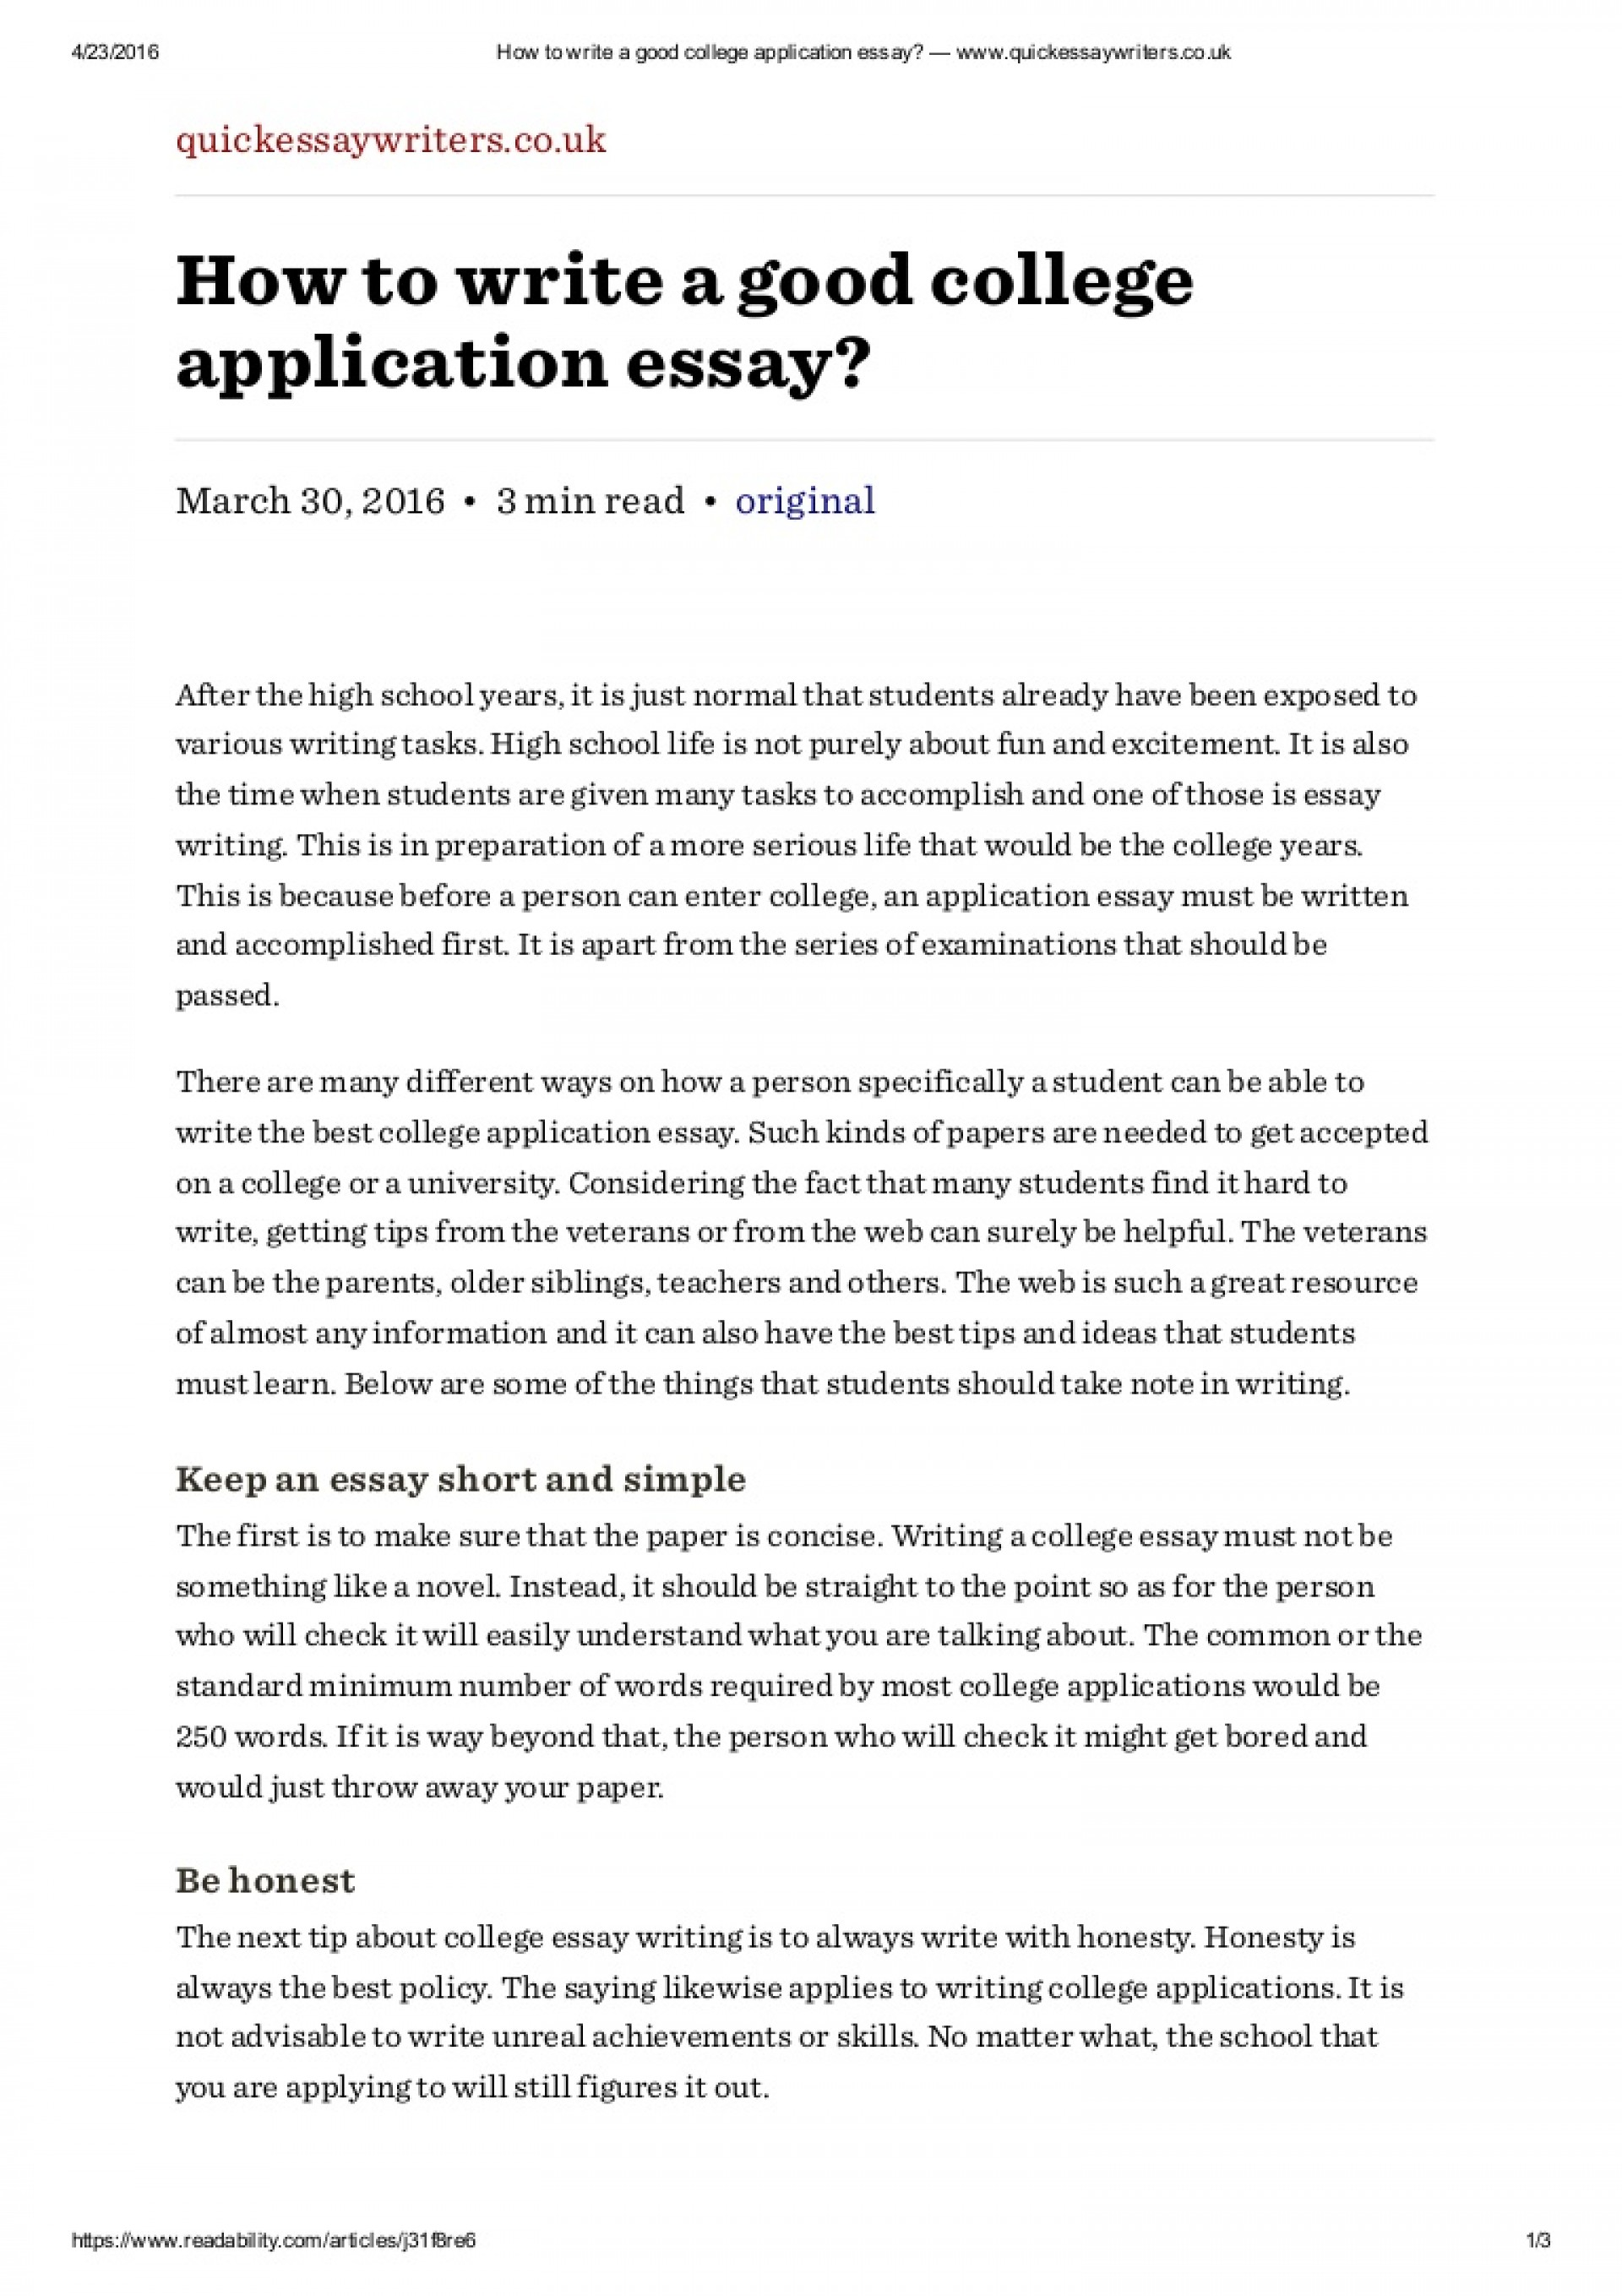 003 Essay Example College Length What To Write In Application Letter How Start App Tips Examples Writing Samples Topics Format Outline Ideas Stirring Normal Paragraph Personal 1920